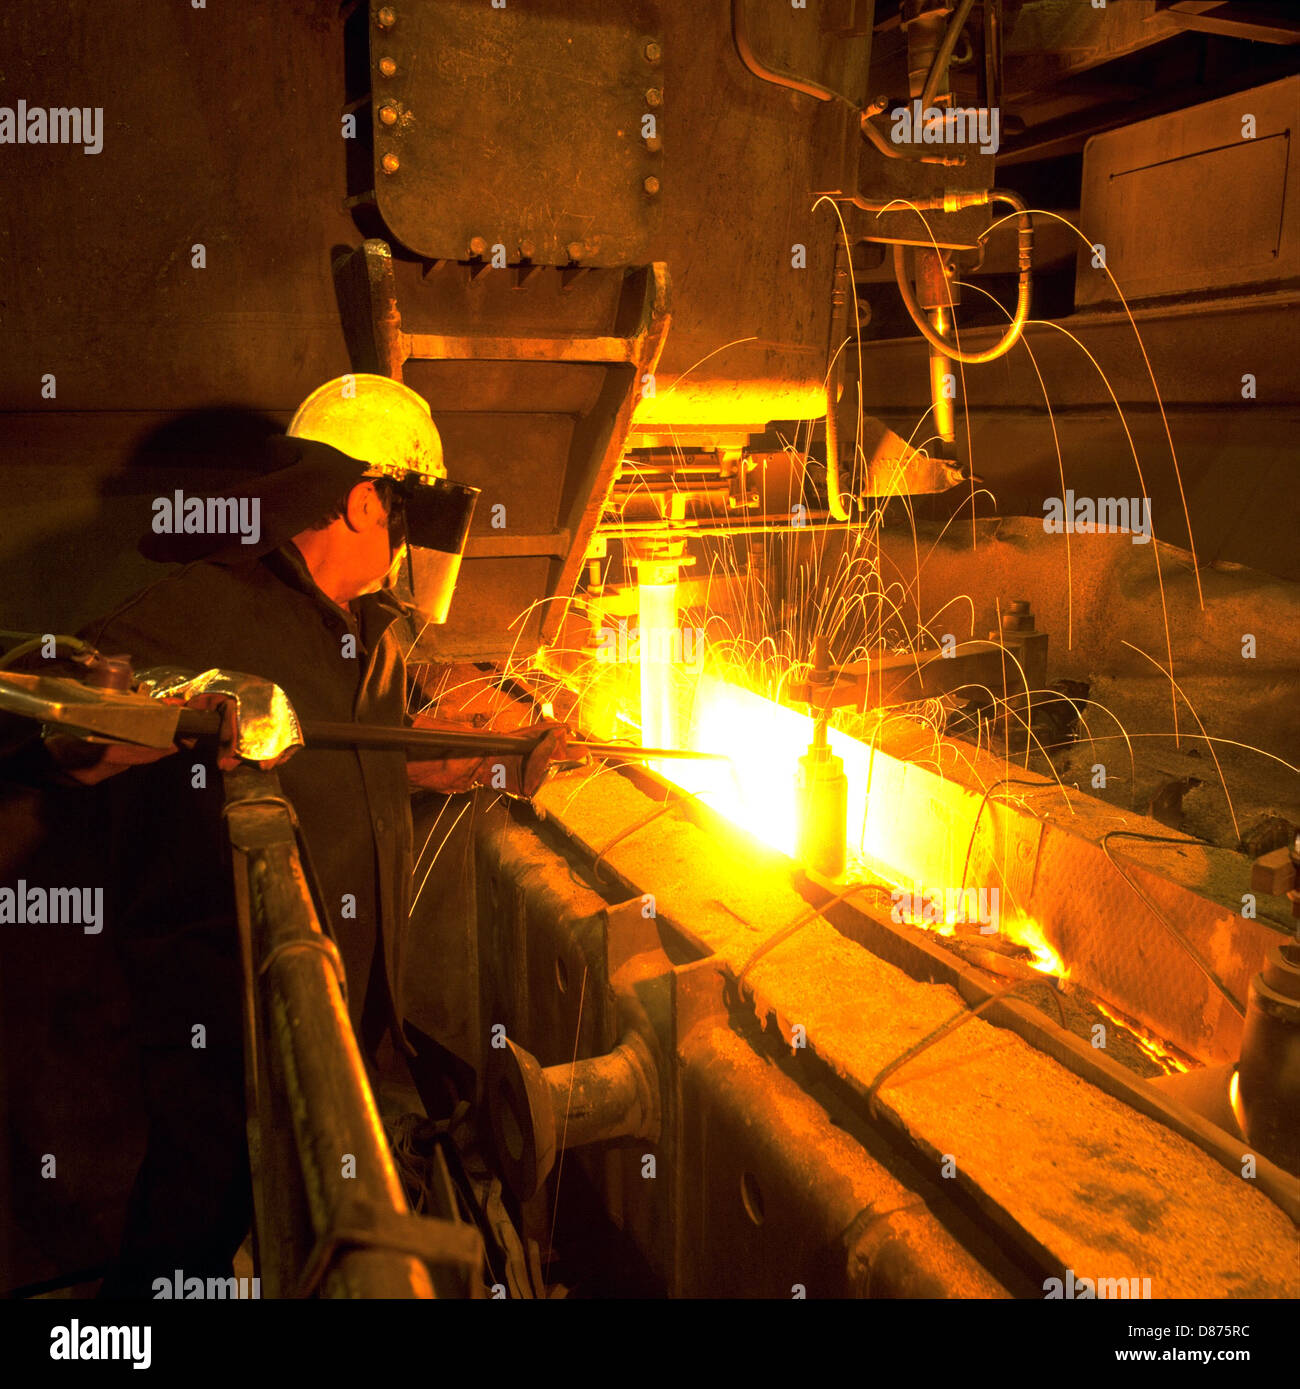 Tundish Mold Continuous Casting : Steelworker enabling flow of molten steel into tundish